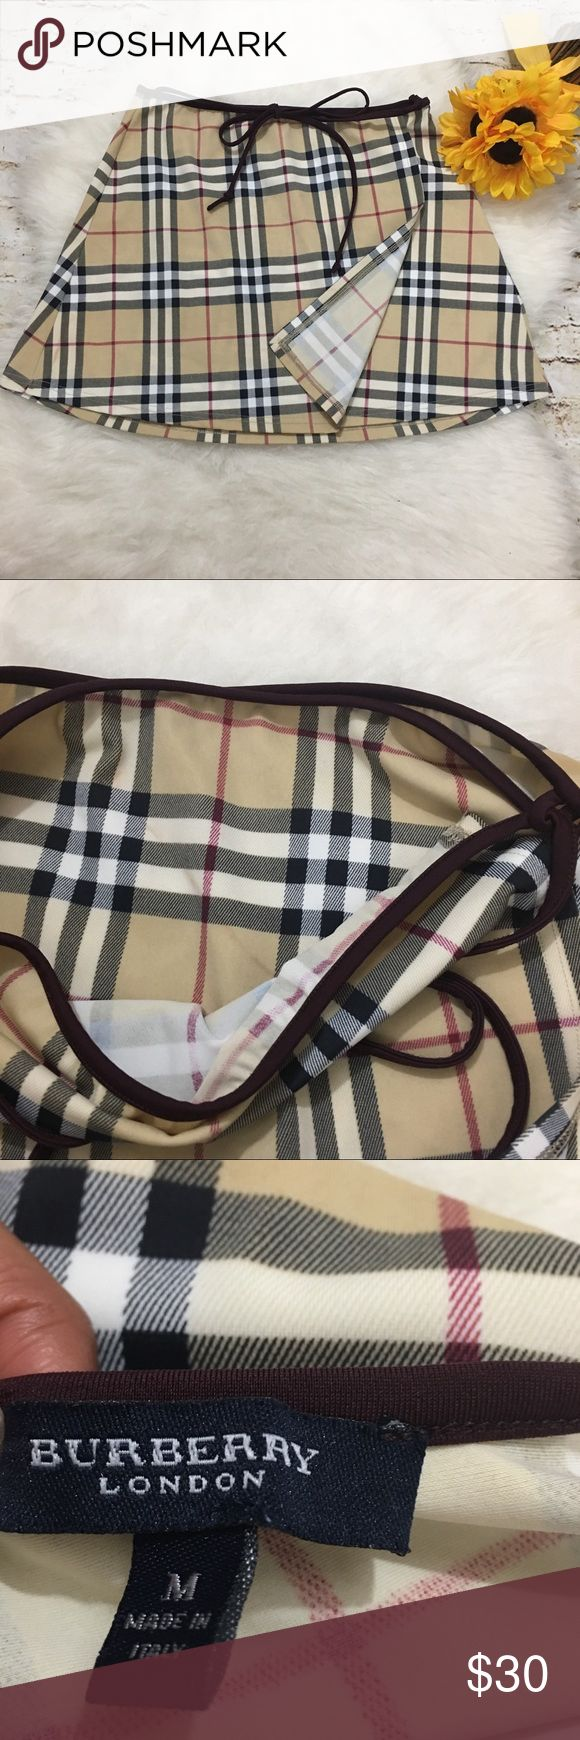 Burberry Wrap Around Sarong Swim Skirt M In good condition, but does have some staining. Nothing too noticeable please see pics. Burberry Swim Sarongs